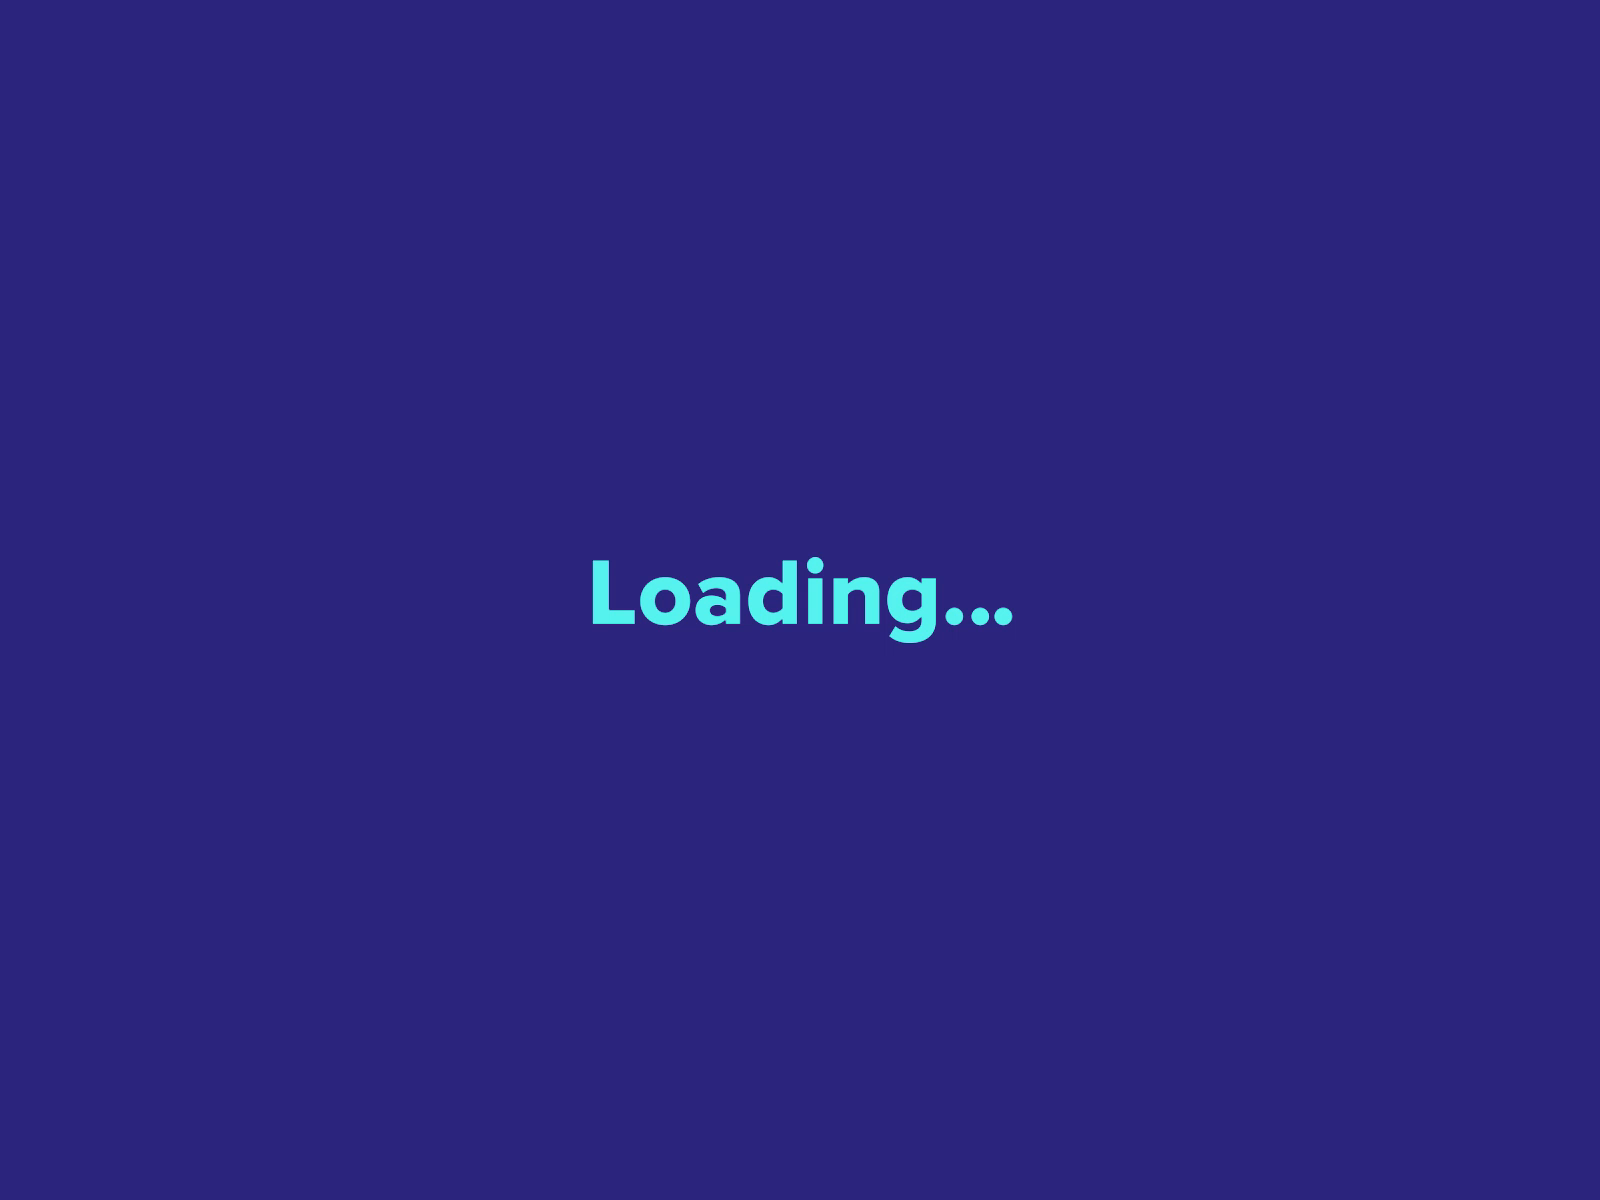 Loading grabity 60fps 2